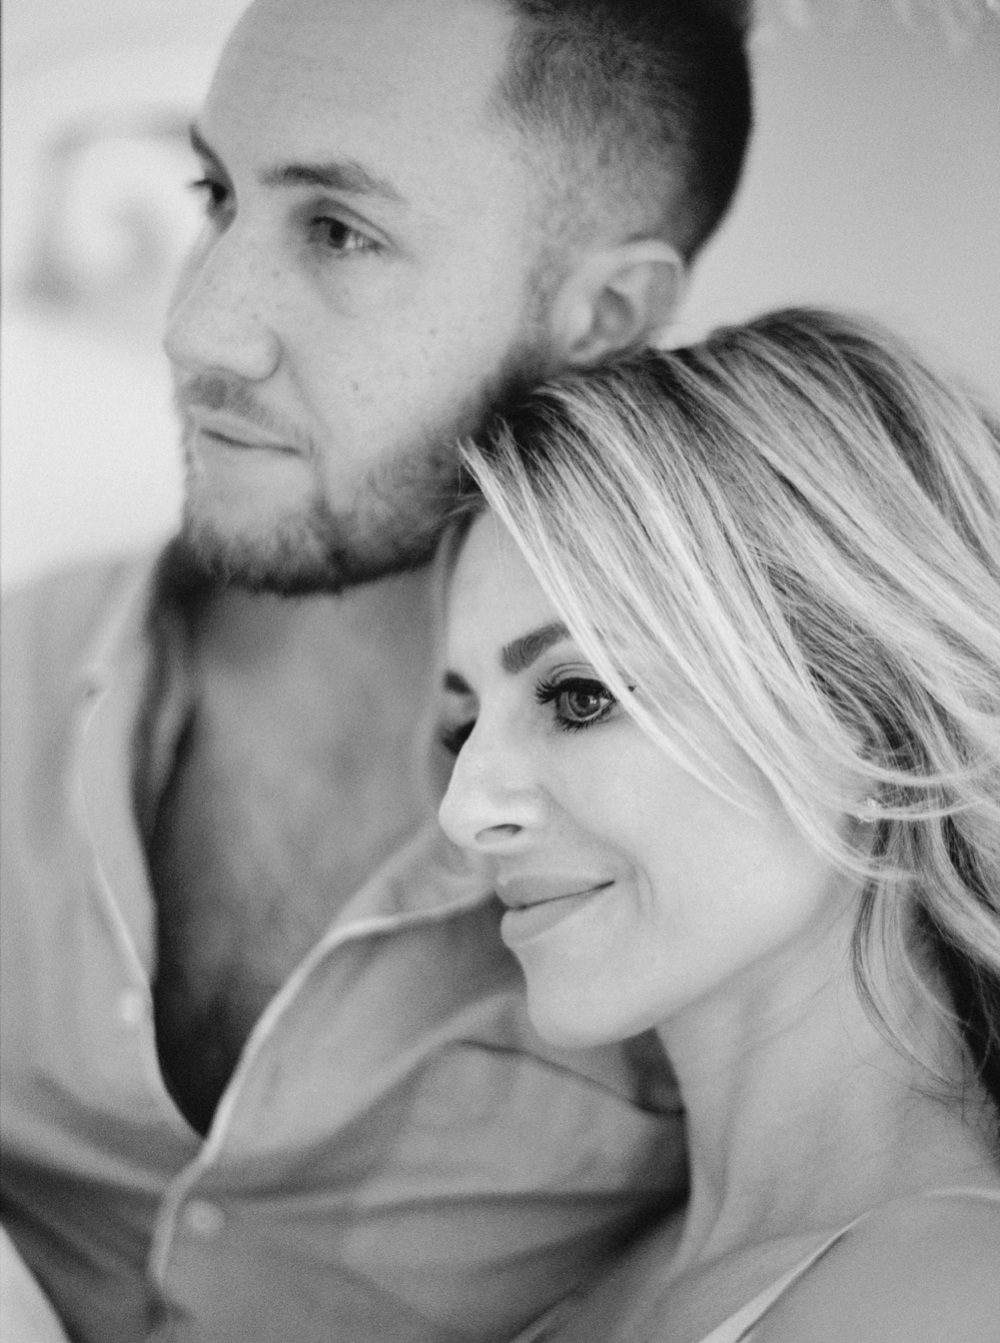 Calgary Wedding Photographers | Calgary couples photographer | In home session | intimate couples session | Justine Milton Photography